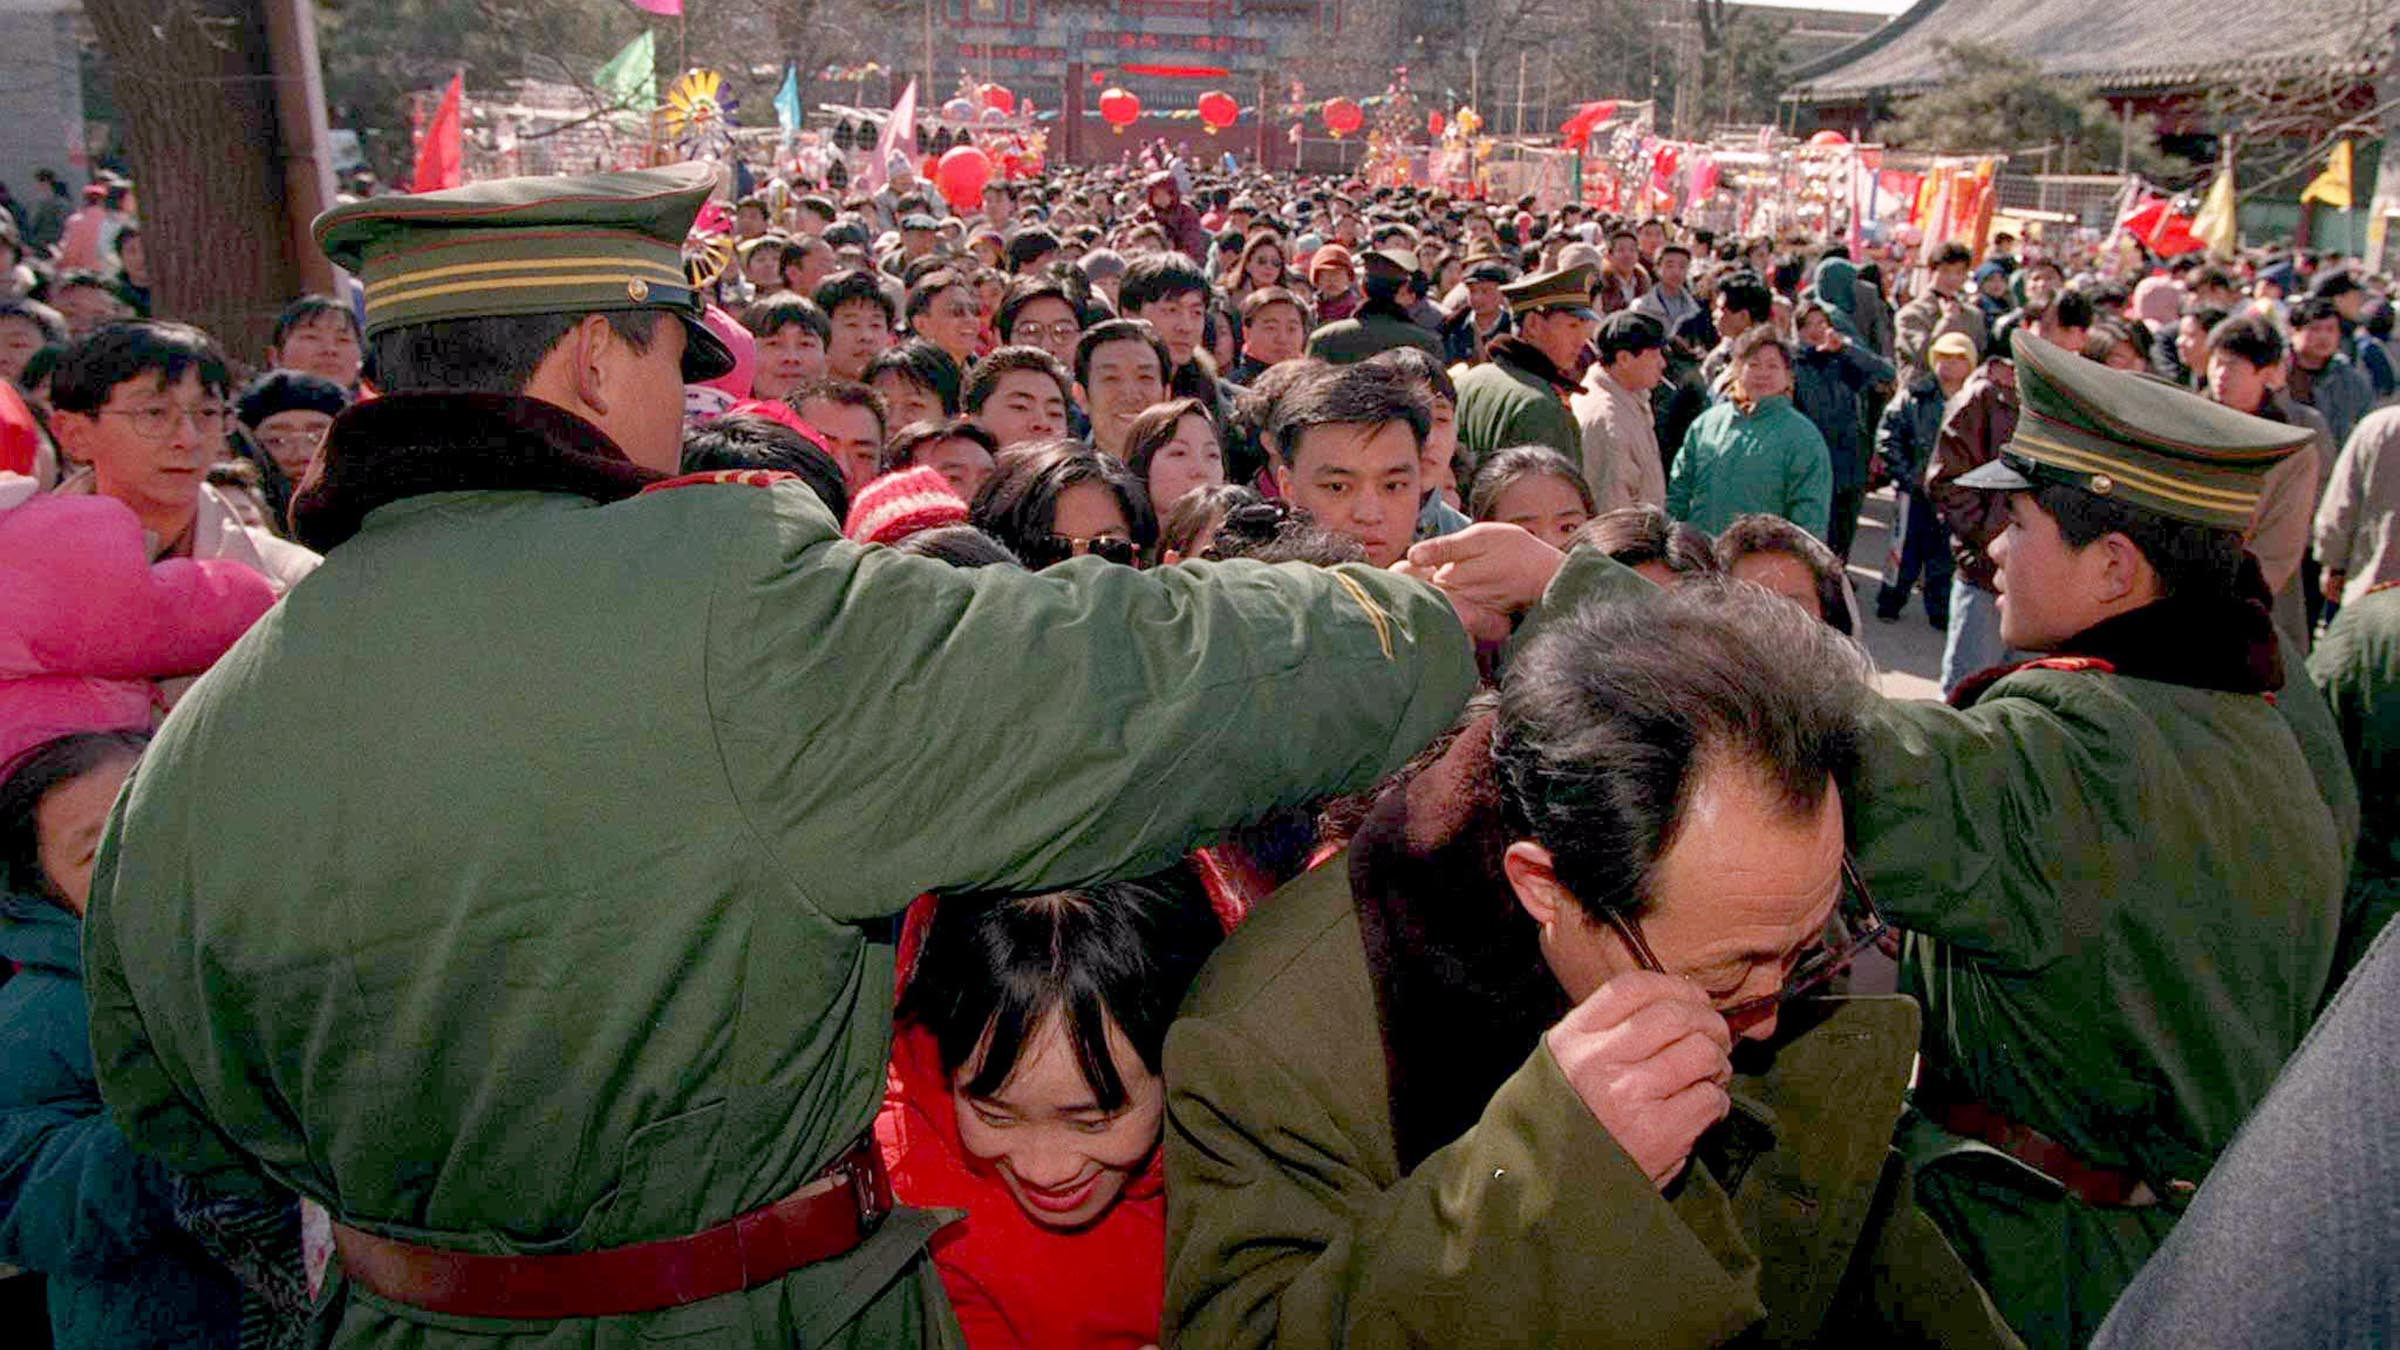 Police link arms to form a human gate in an attempt to control the human tide at Beijing's Temple of The White Cloud as Spring Festival revellers pour into the temple grounds on Chinese new year's day February 19. People will touch the gate, offer prayers, throw money for good luck and burn incense as they hope for more prosperity and good luck for the coming year.  CHINA NEW YEAR - RTR3WD